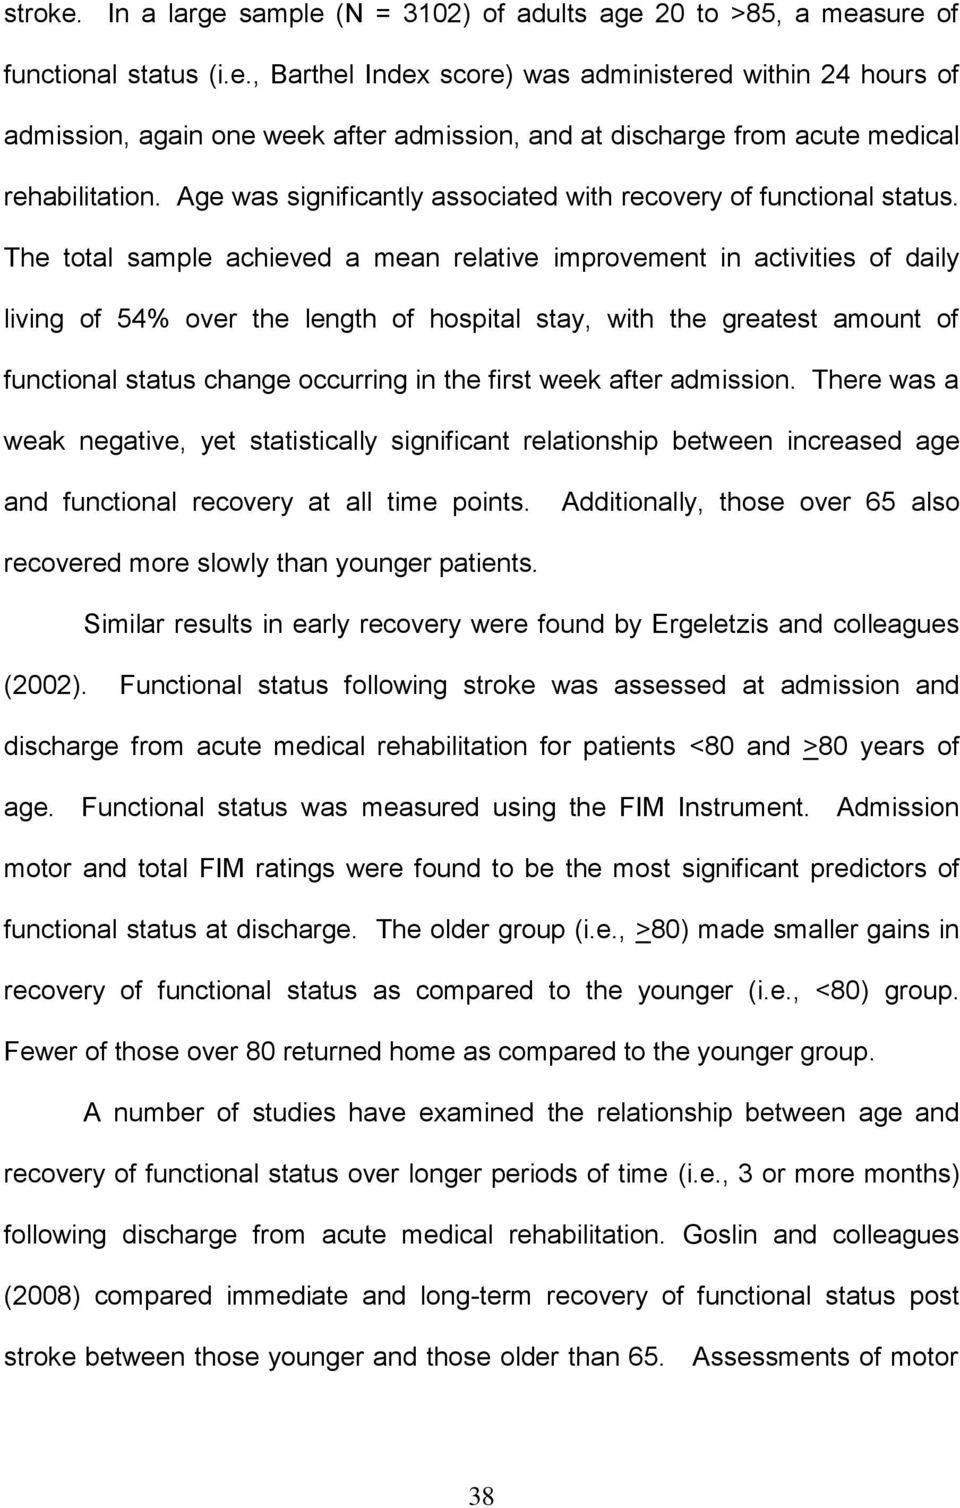 The total sample achieved a mean relative improvement in activities of daily living of 54% over the length of hospital stay, with the greatest amount of functional status change occurring in the